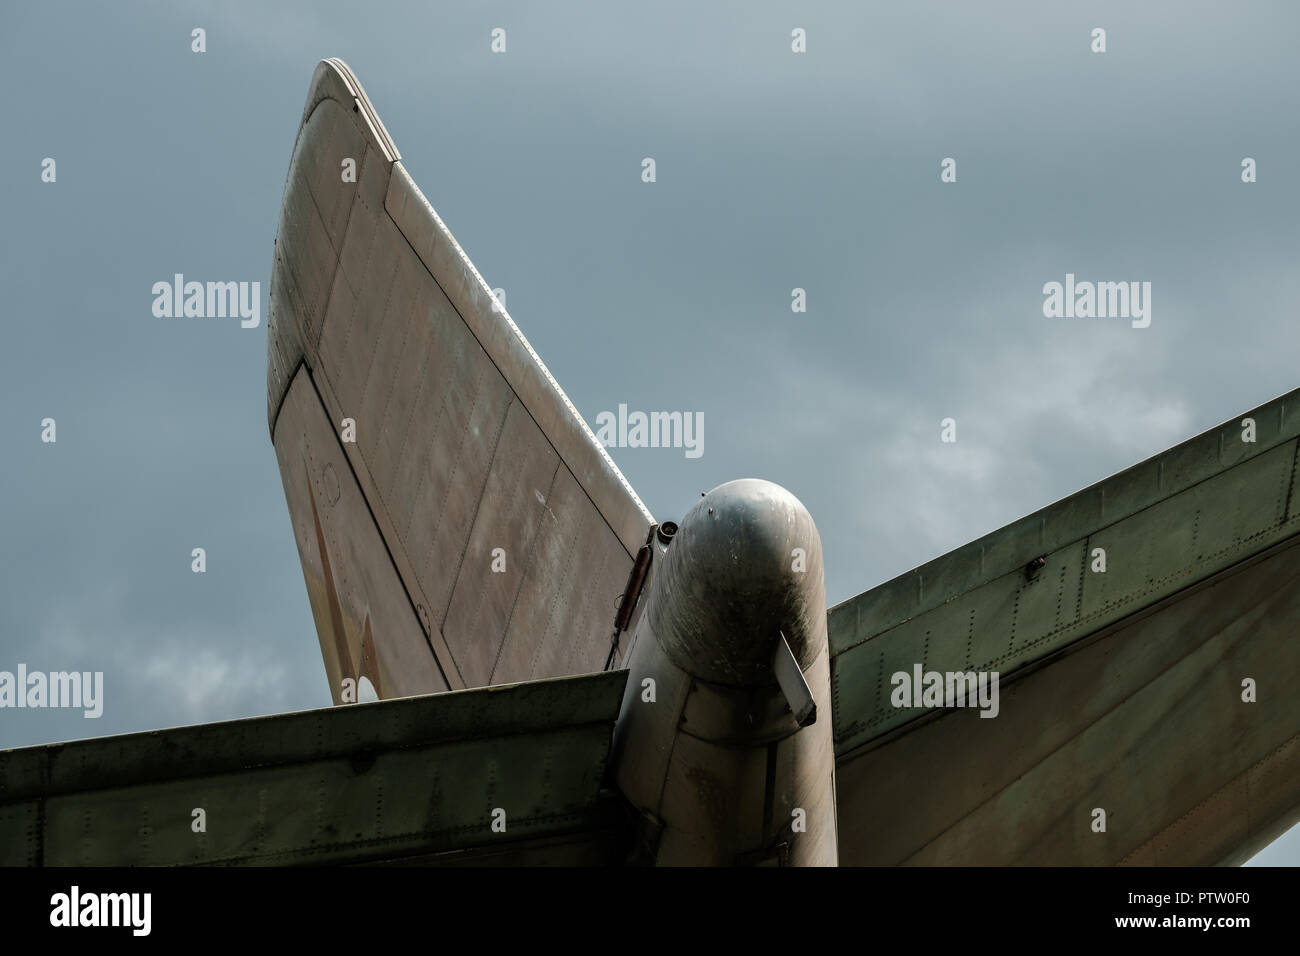 Old Canberra Bomber at Willowbank - Stock Image